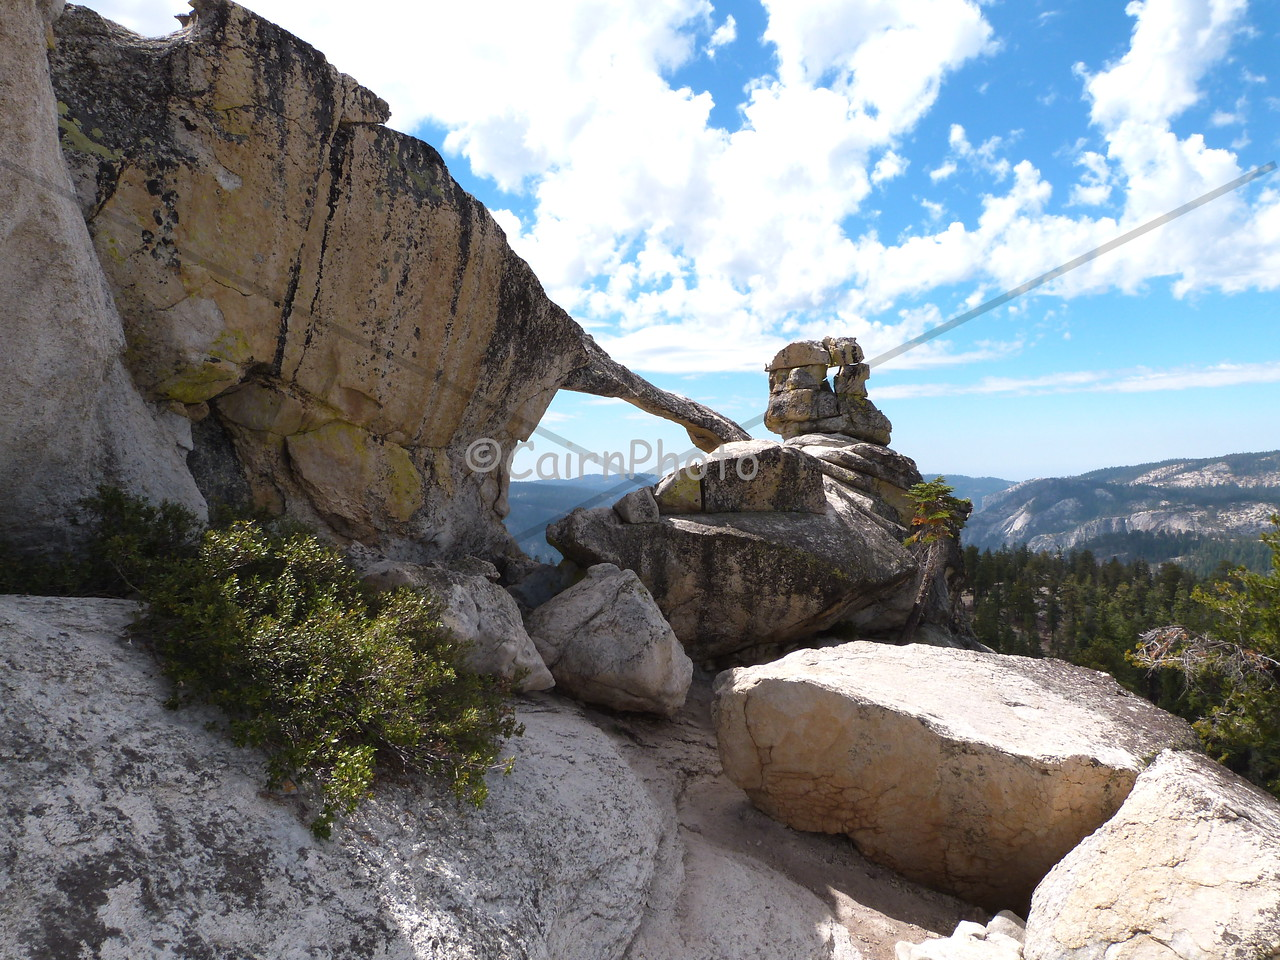 Indian Ridge Natural Arch, North Dome Trail.